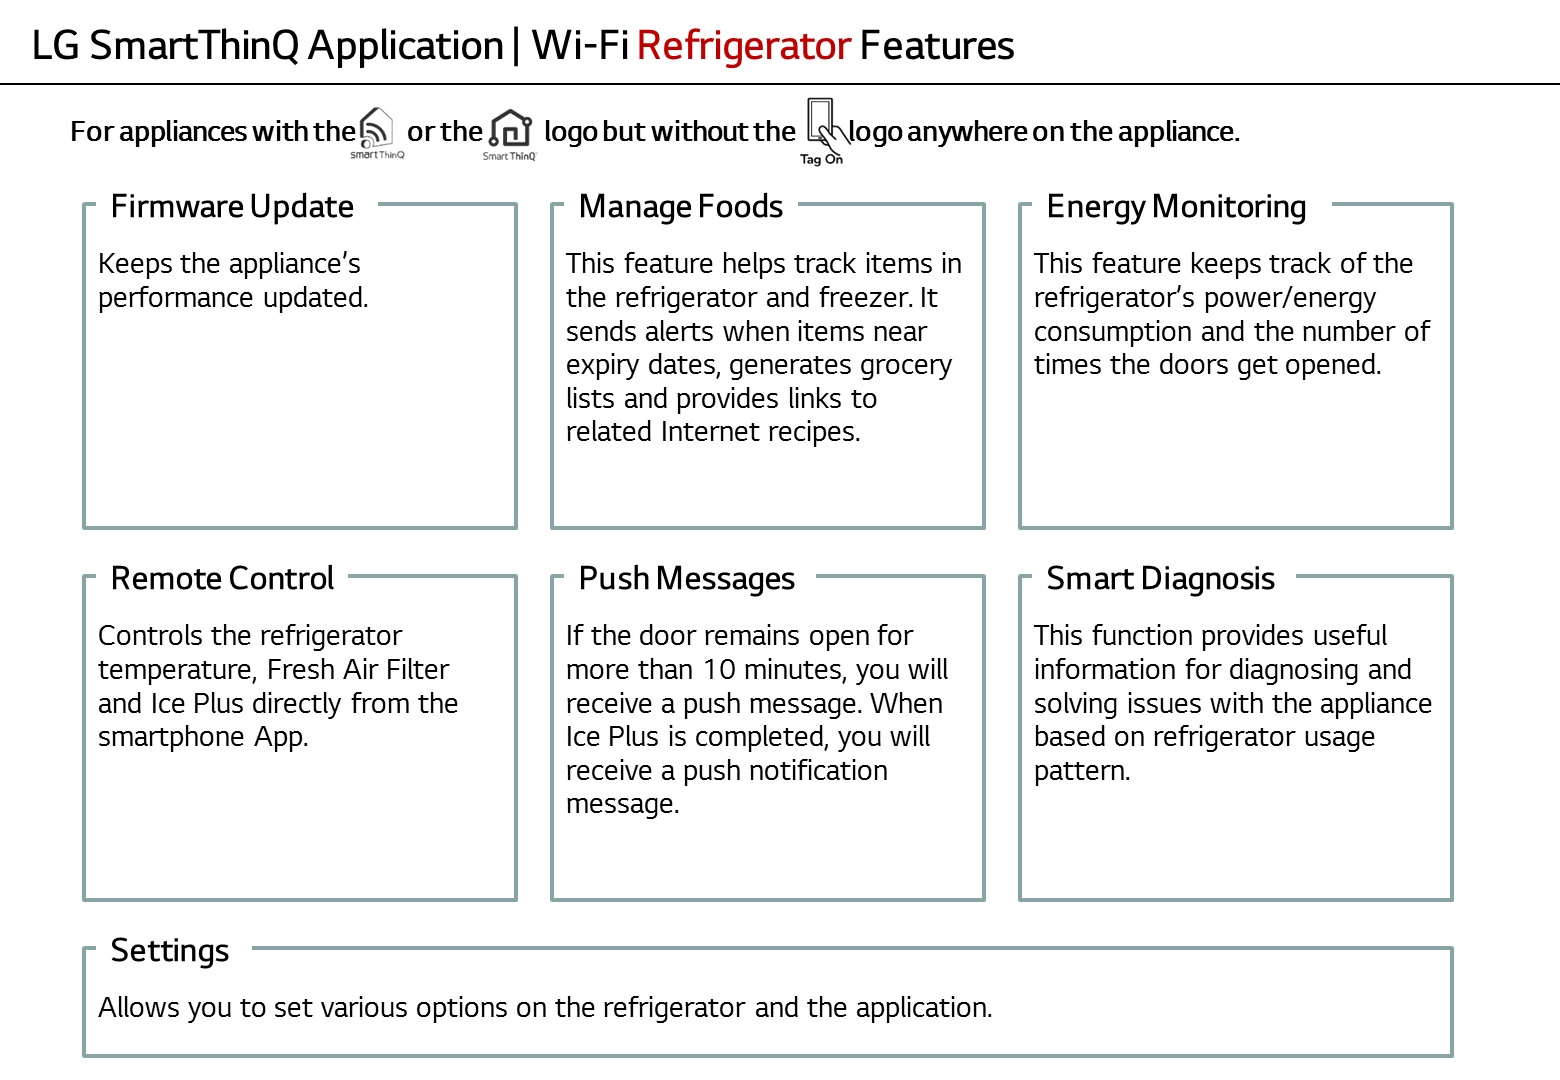 LG Help Library: Smart ThinQ App overview & basic troubleshooting